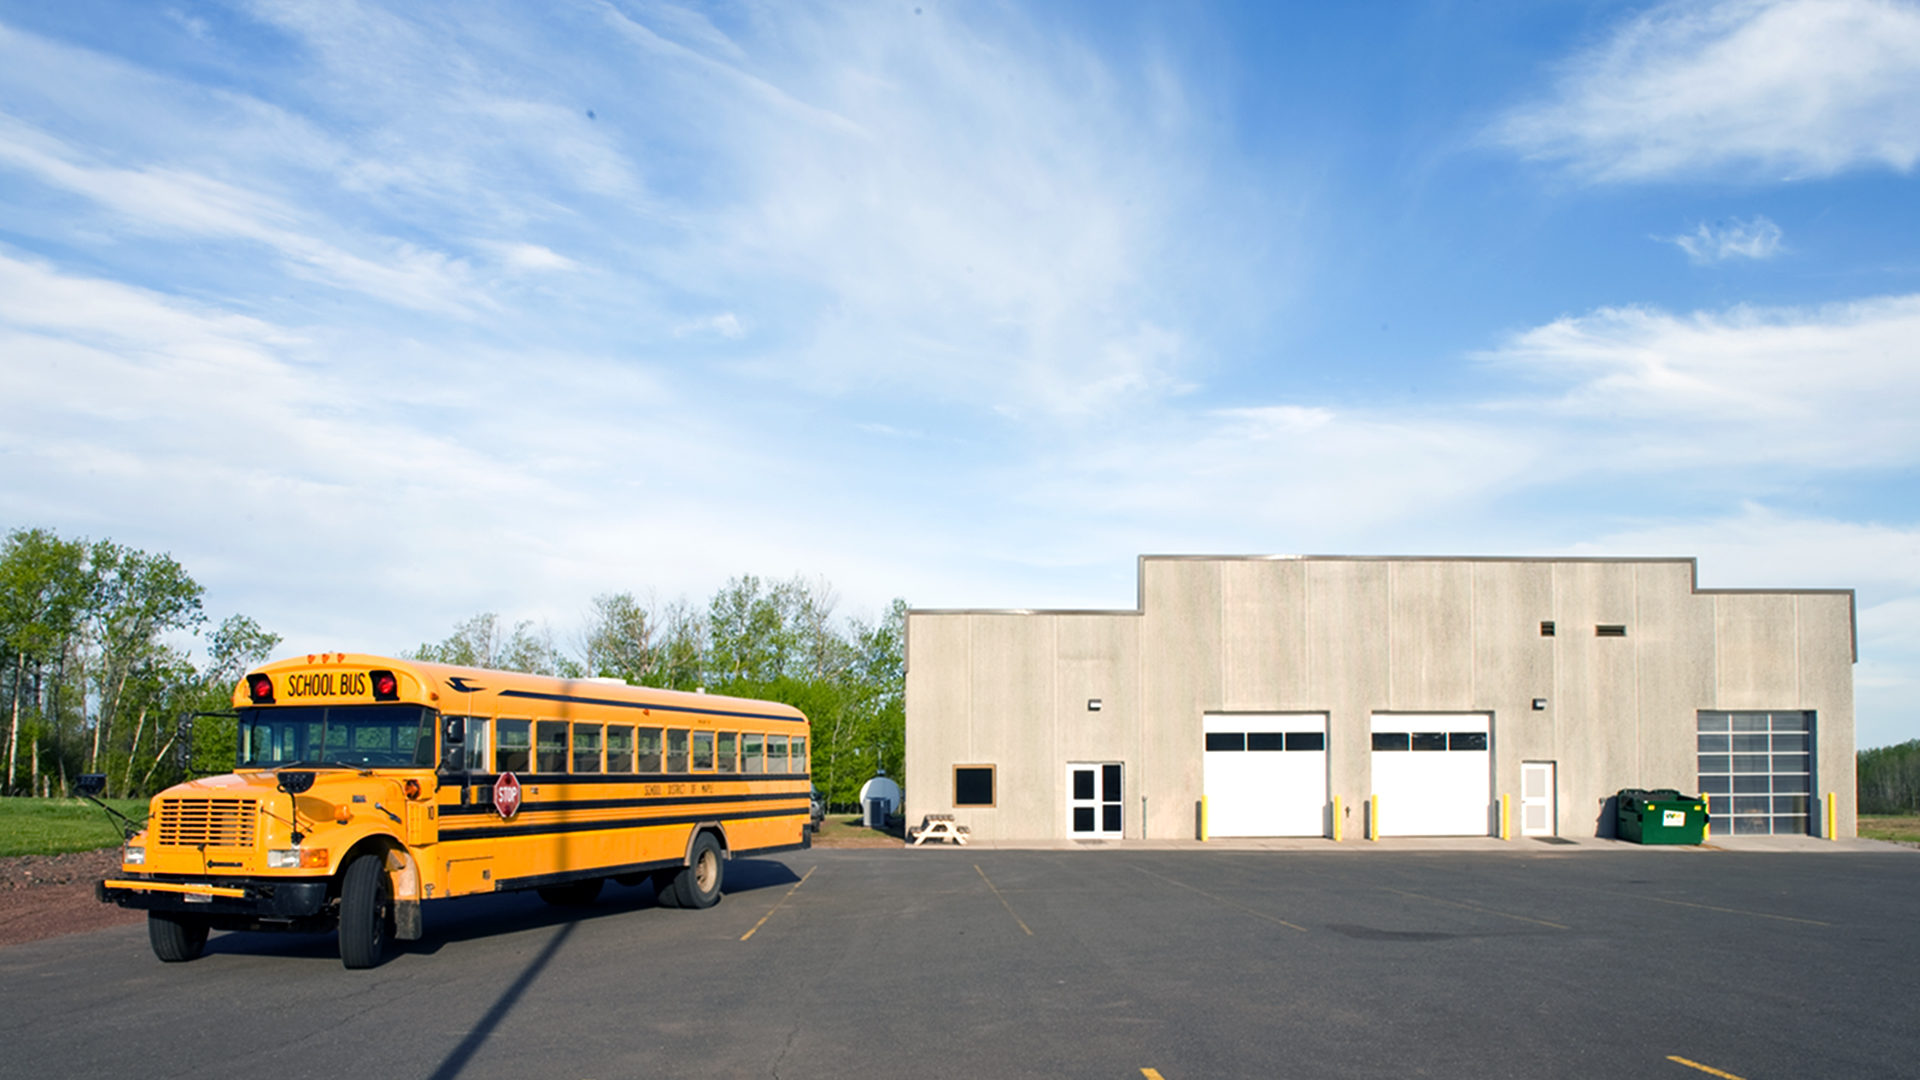 Maple School Transportation Building Poplar WI Exterior View with Bus Parked In Front